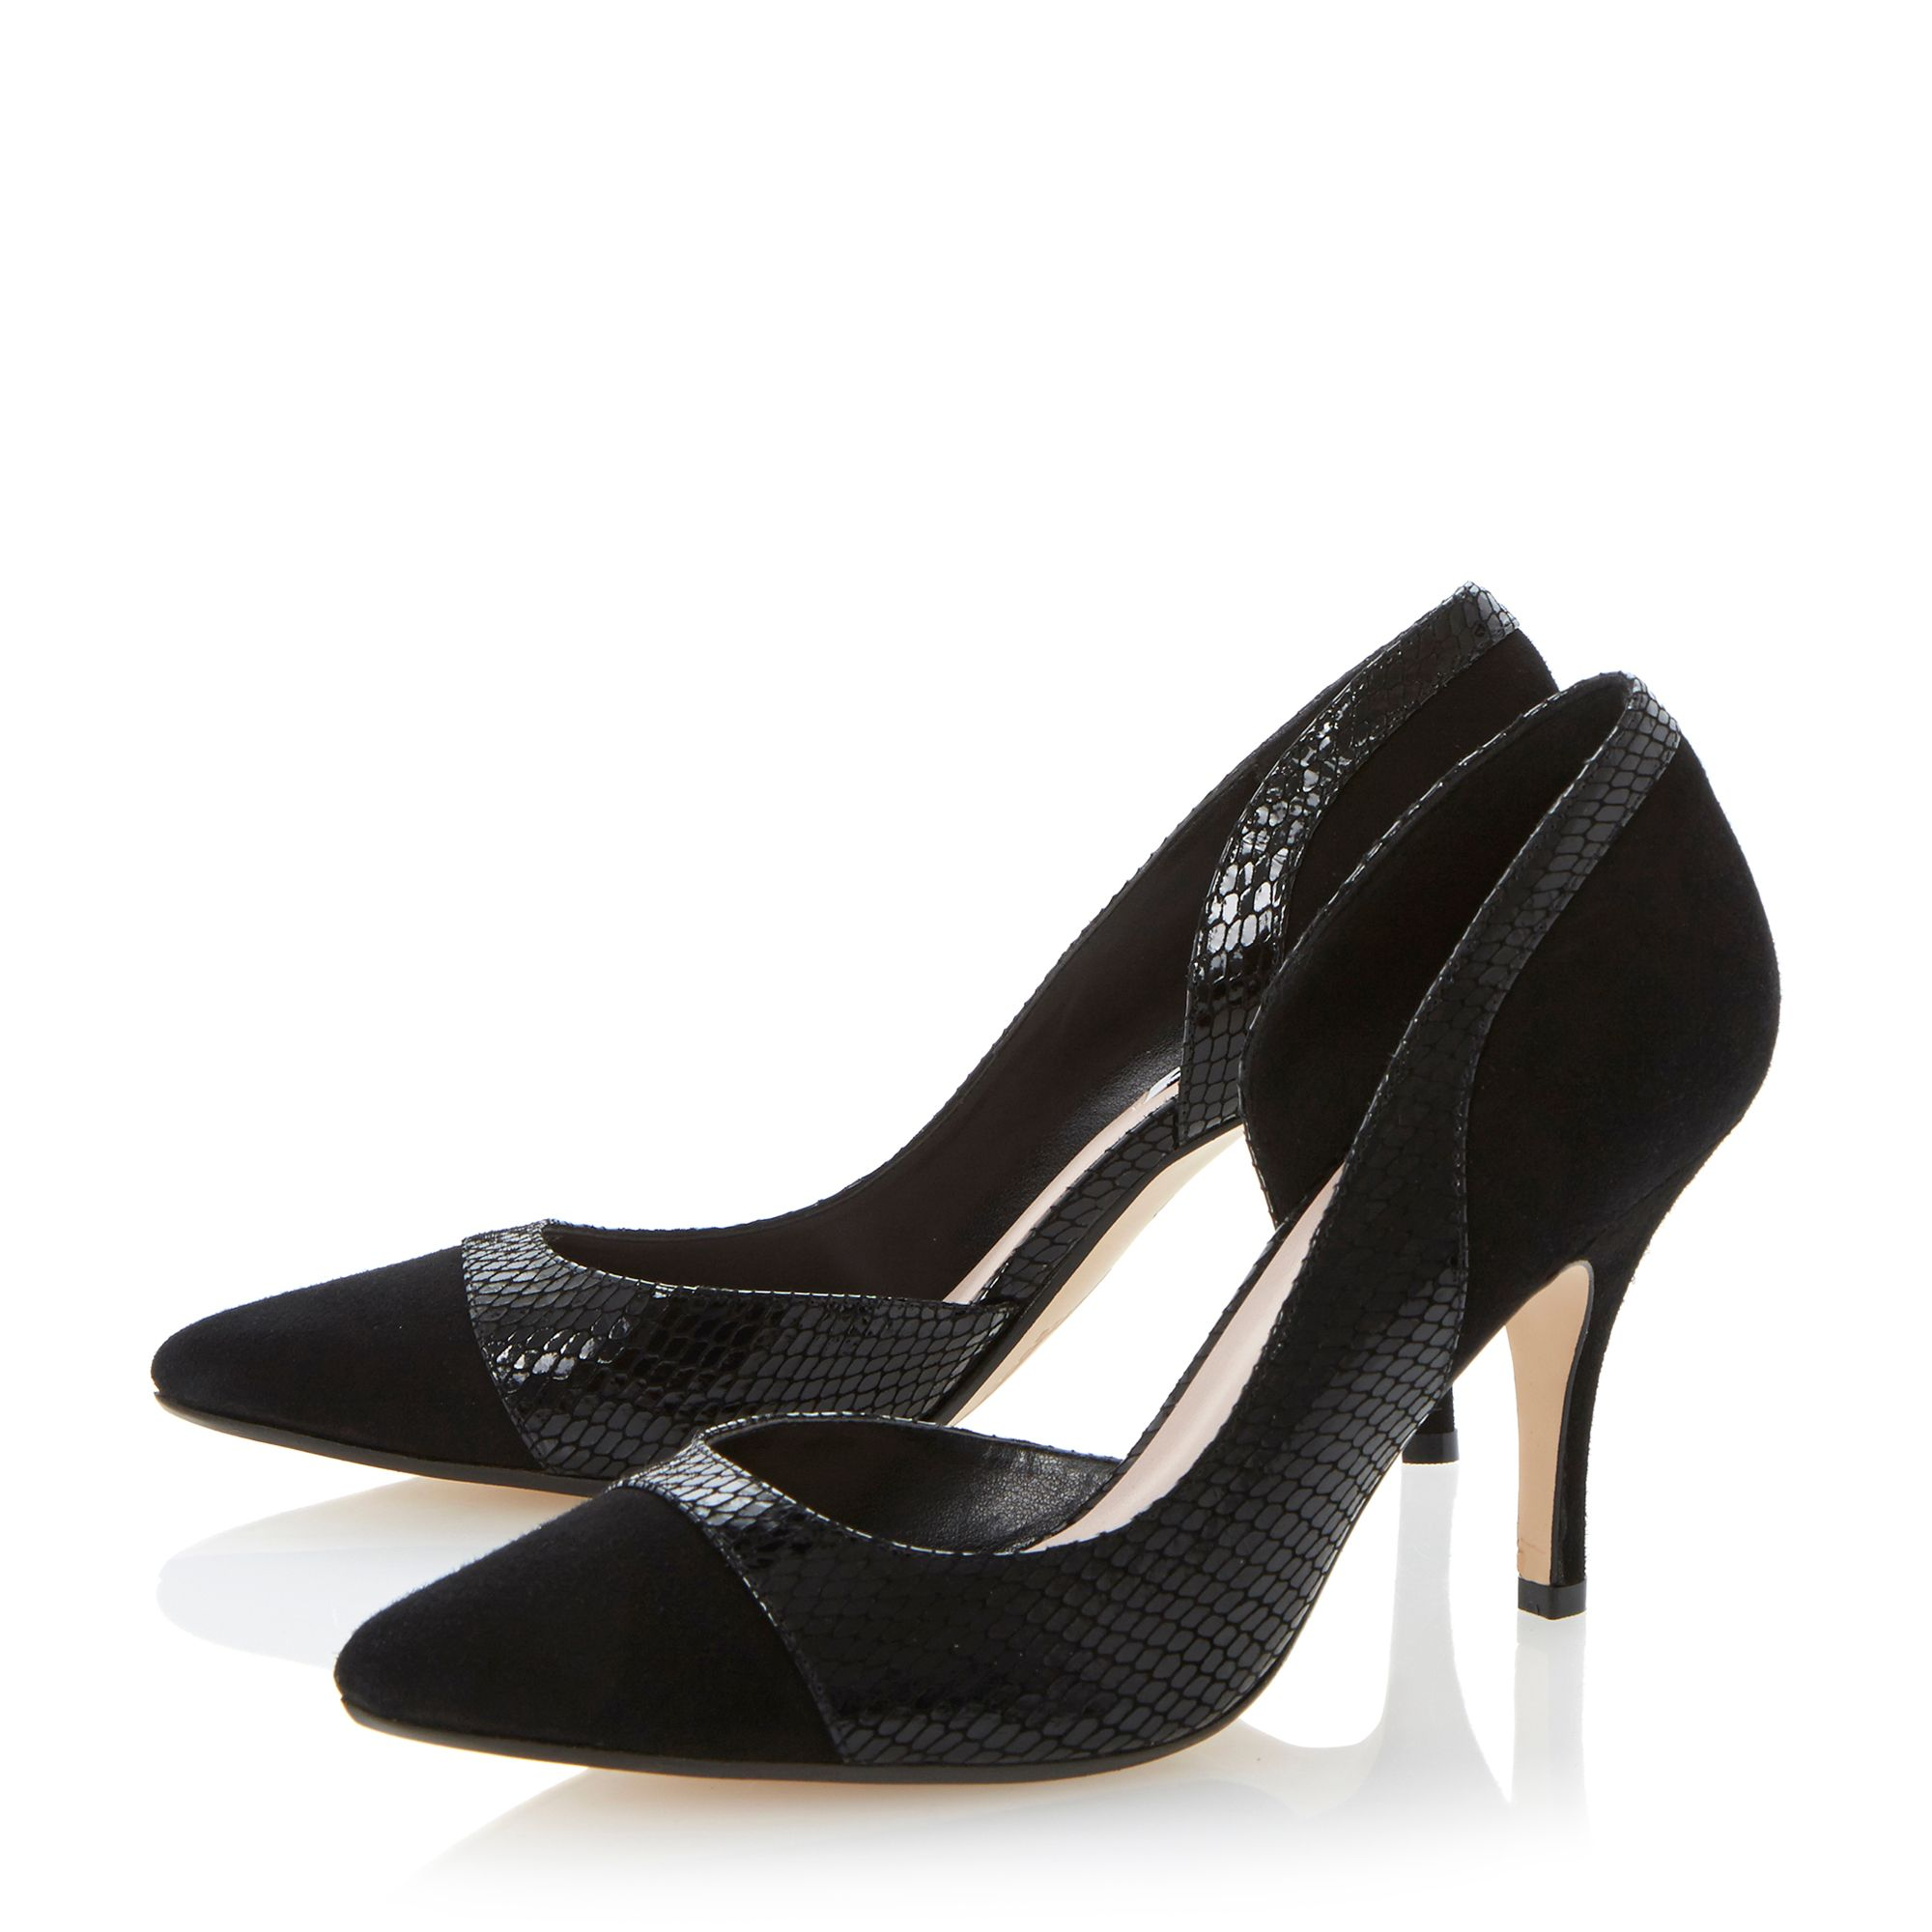 Constance semi dorsay toe cap court shoes